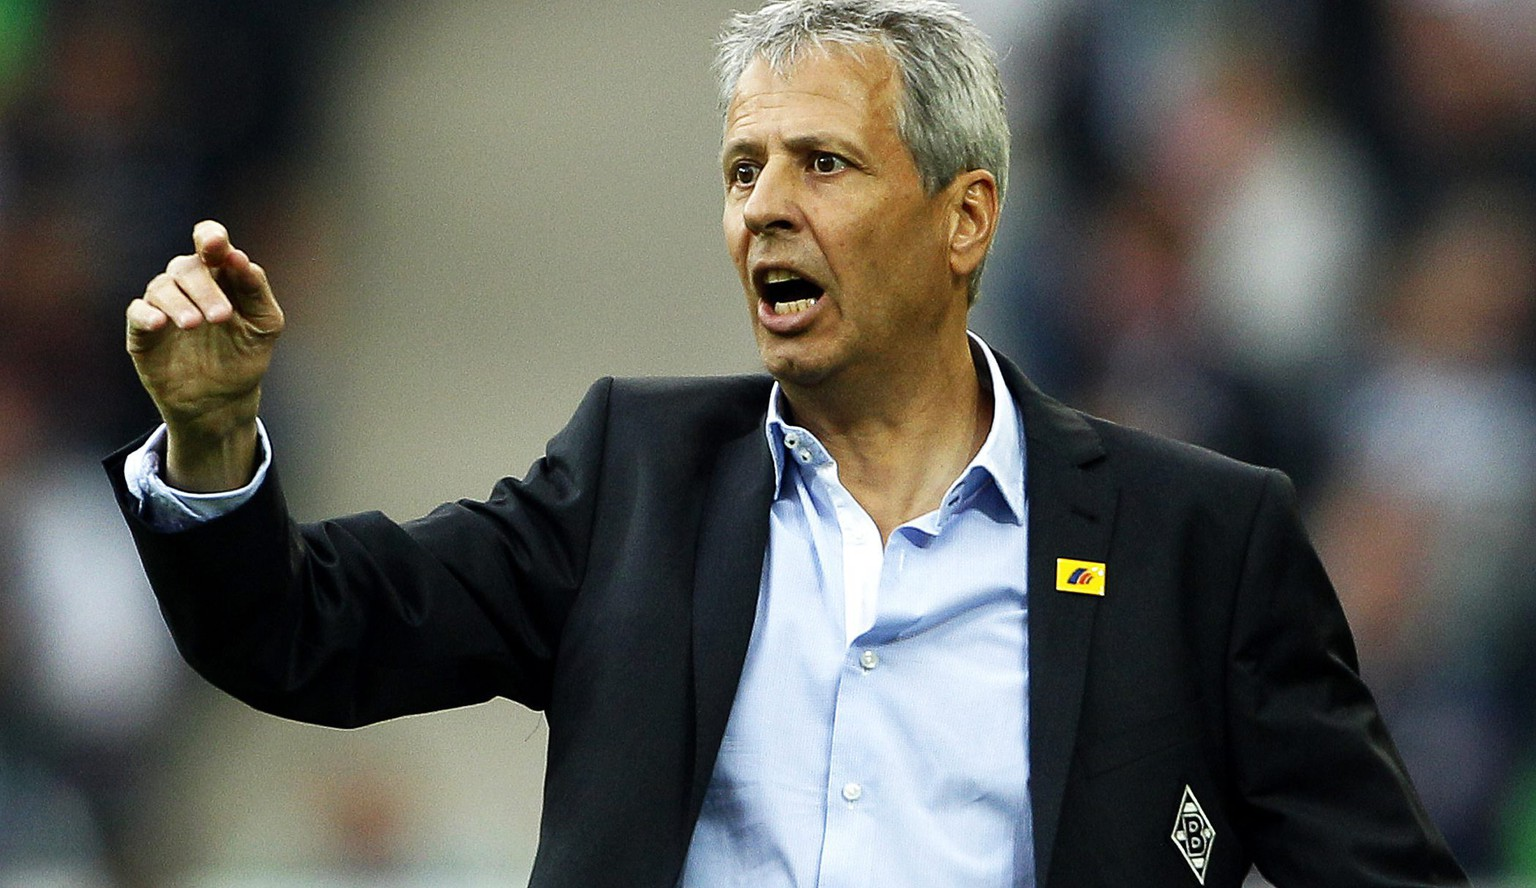 epa04399233 Moenchengladbach's Swiss head coach Lucien Favre reacts during the German Bundesliga soccer match between Borussia Moenchengladbach and FC Schalke 04 at Borussia-Park in Moenchengladbach, Germany, 13 September 2014.  EPA/ROLAND WEIHRAUCH (ATTENTION: Due to the accreditation guidelines, the DFL only permits the publication and utilisation of up to 15 pictures per match on the internet and in online media during the match.)